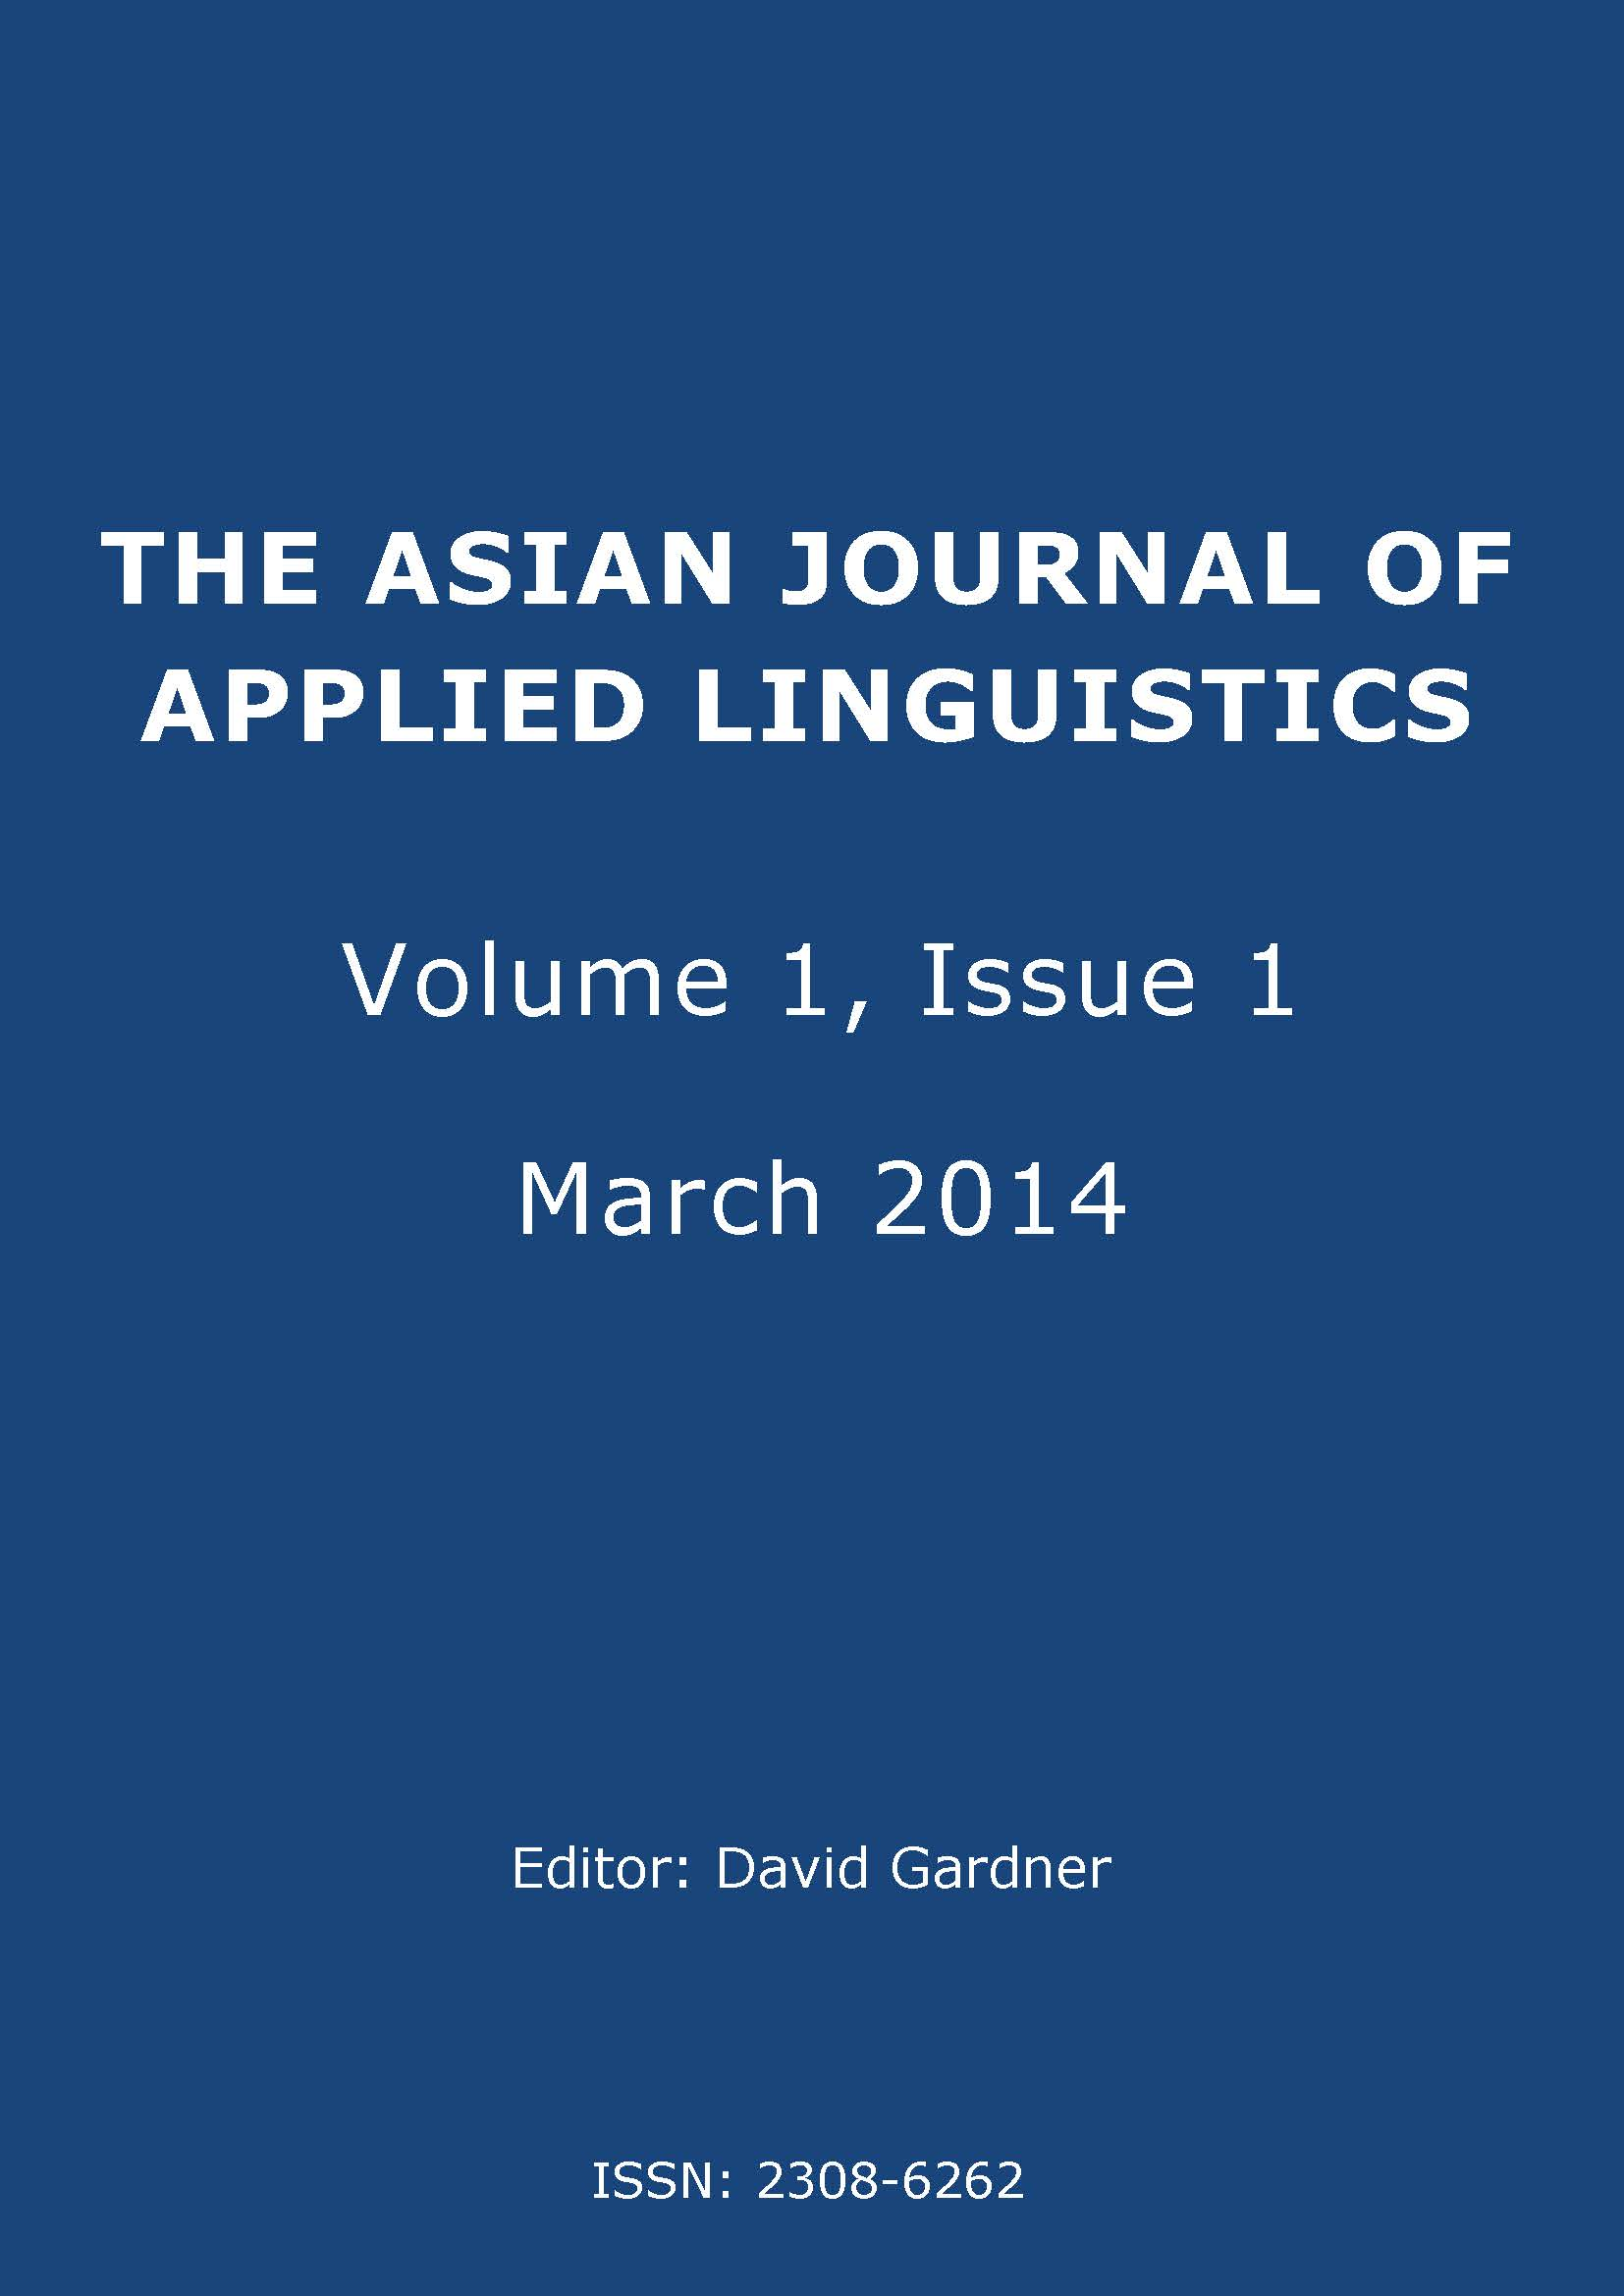 The Asian Journal of Applied Linguistics. Volume 1. Issue 1. March 2014